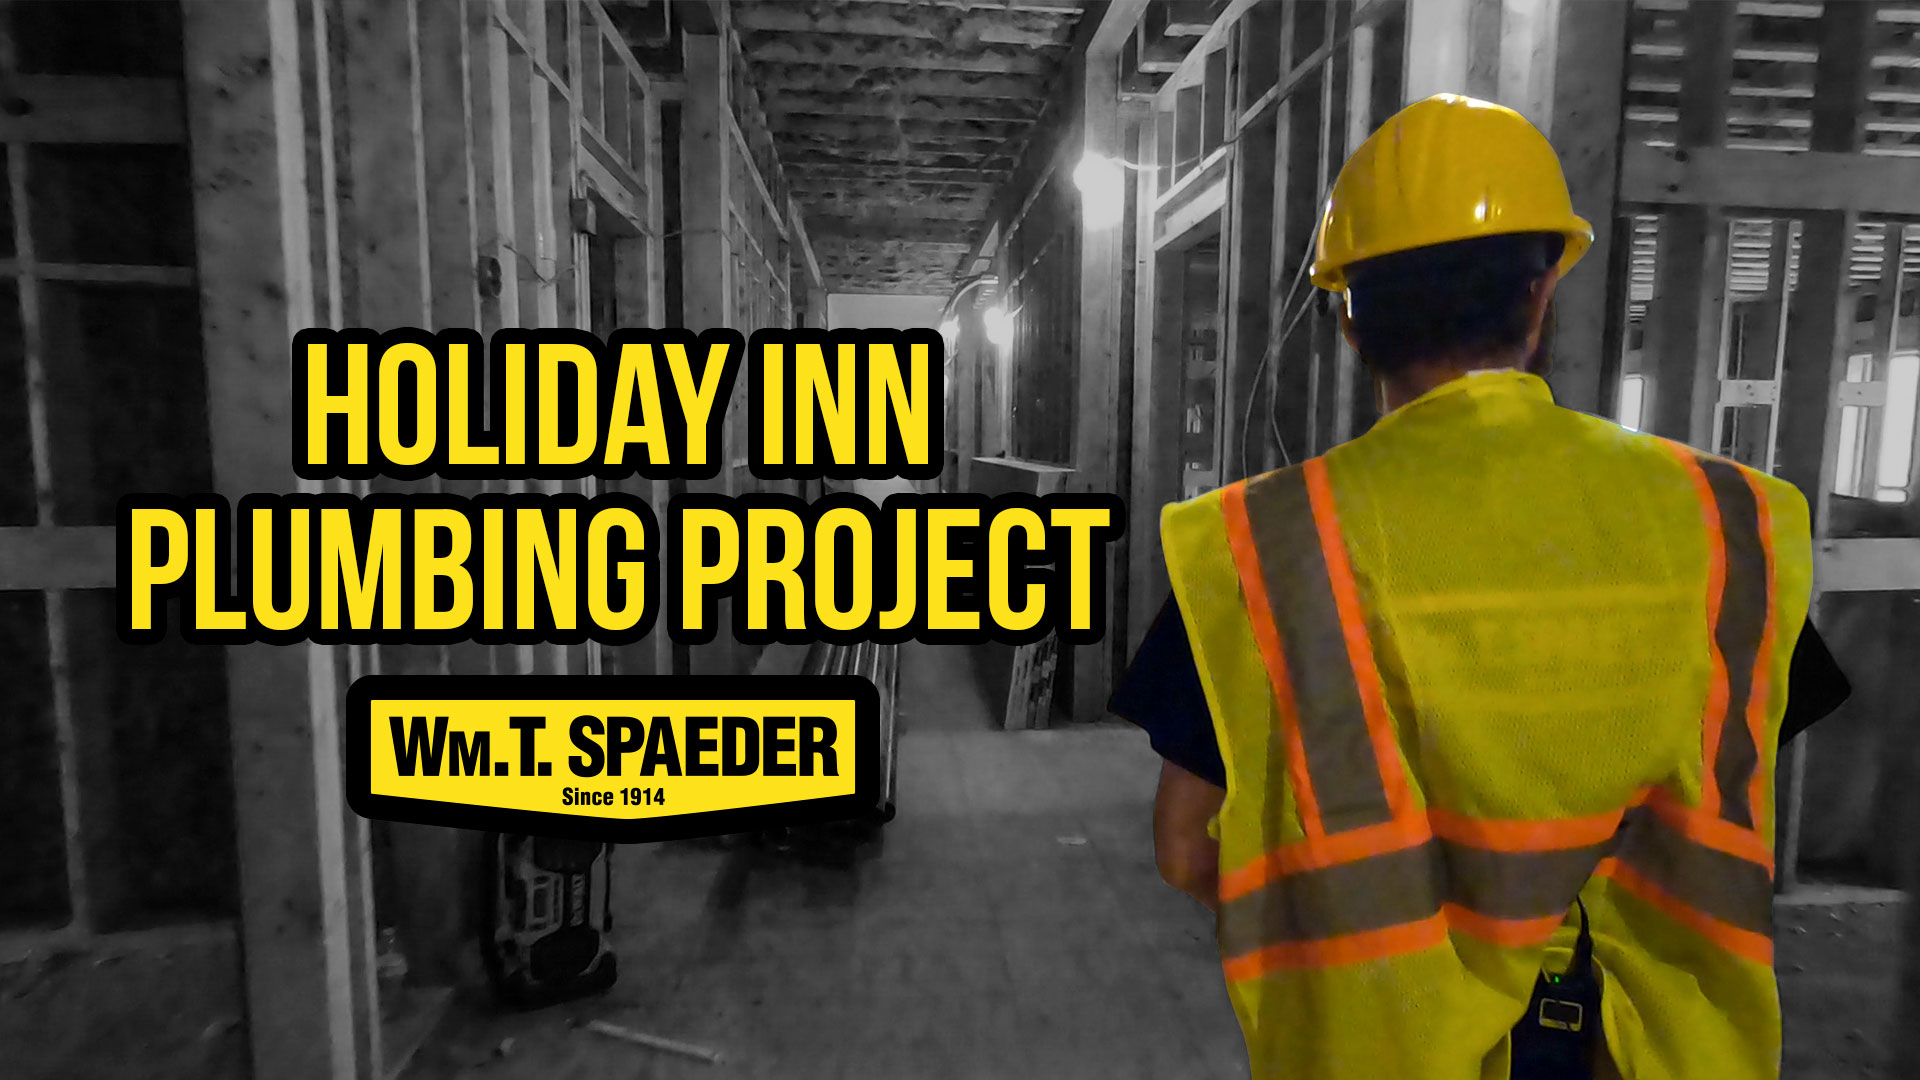 Holiday Inn Plumbing Project